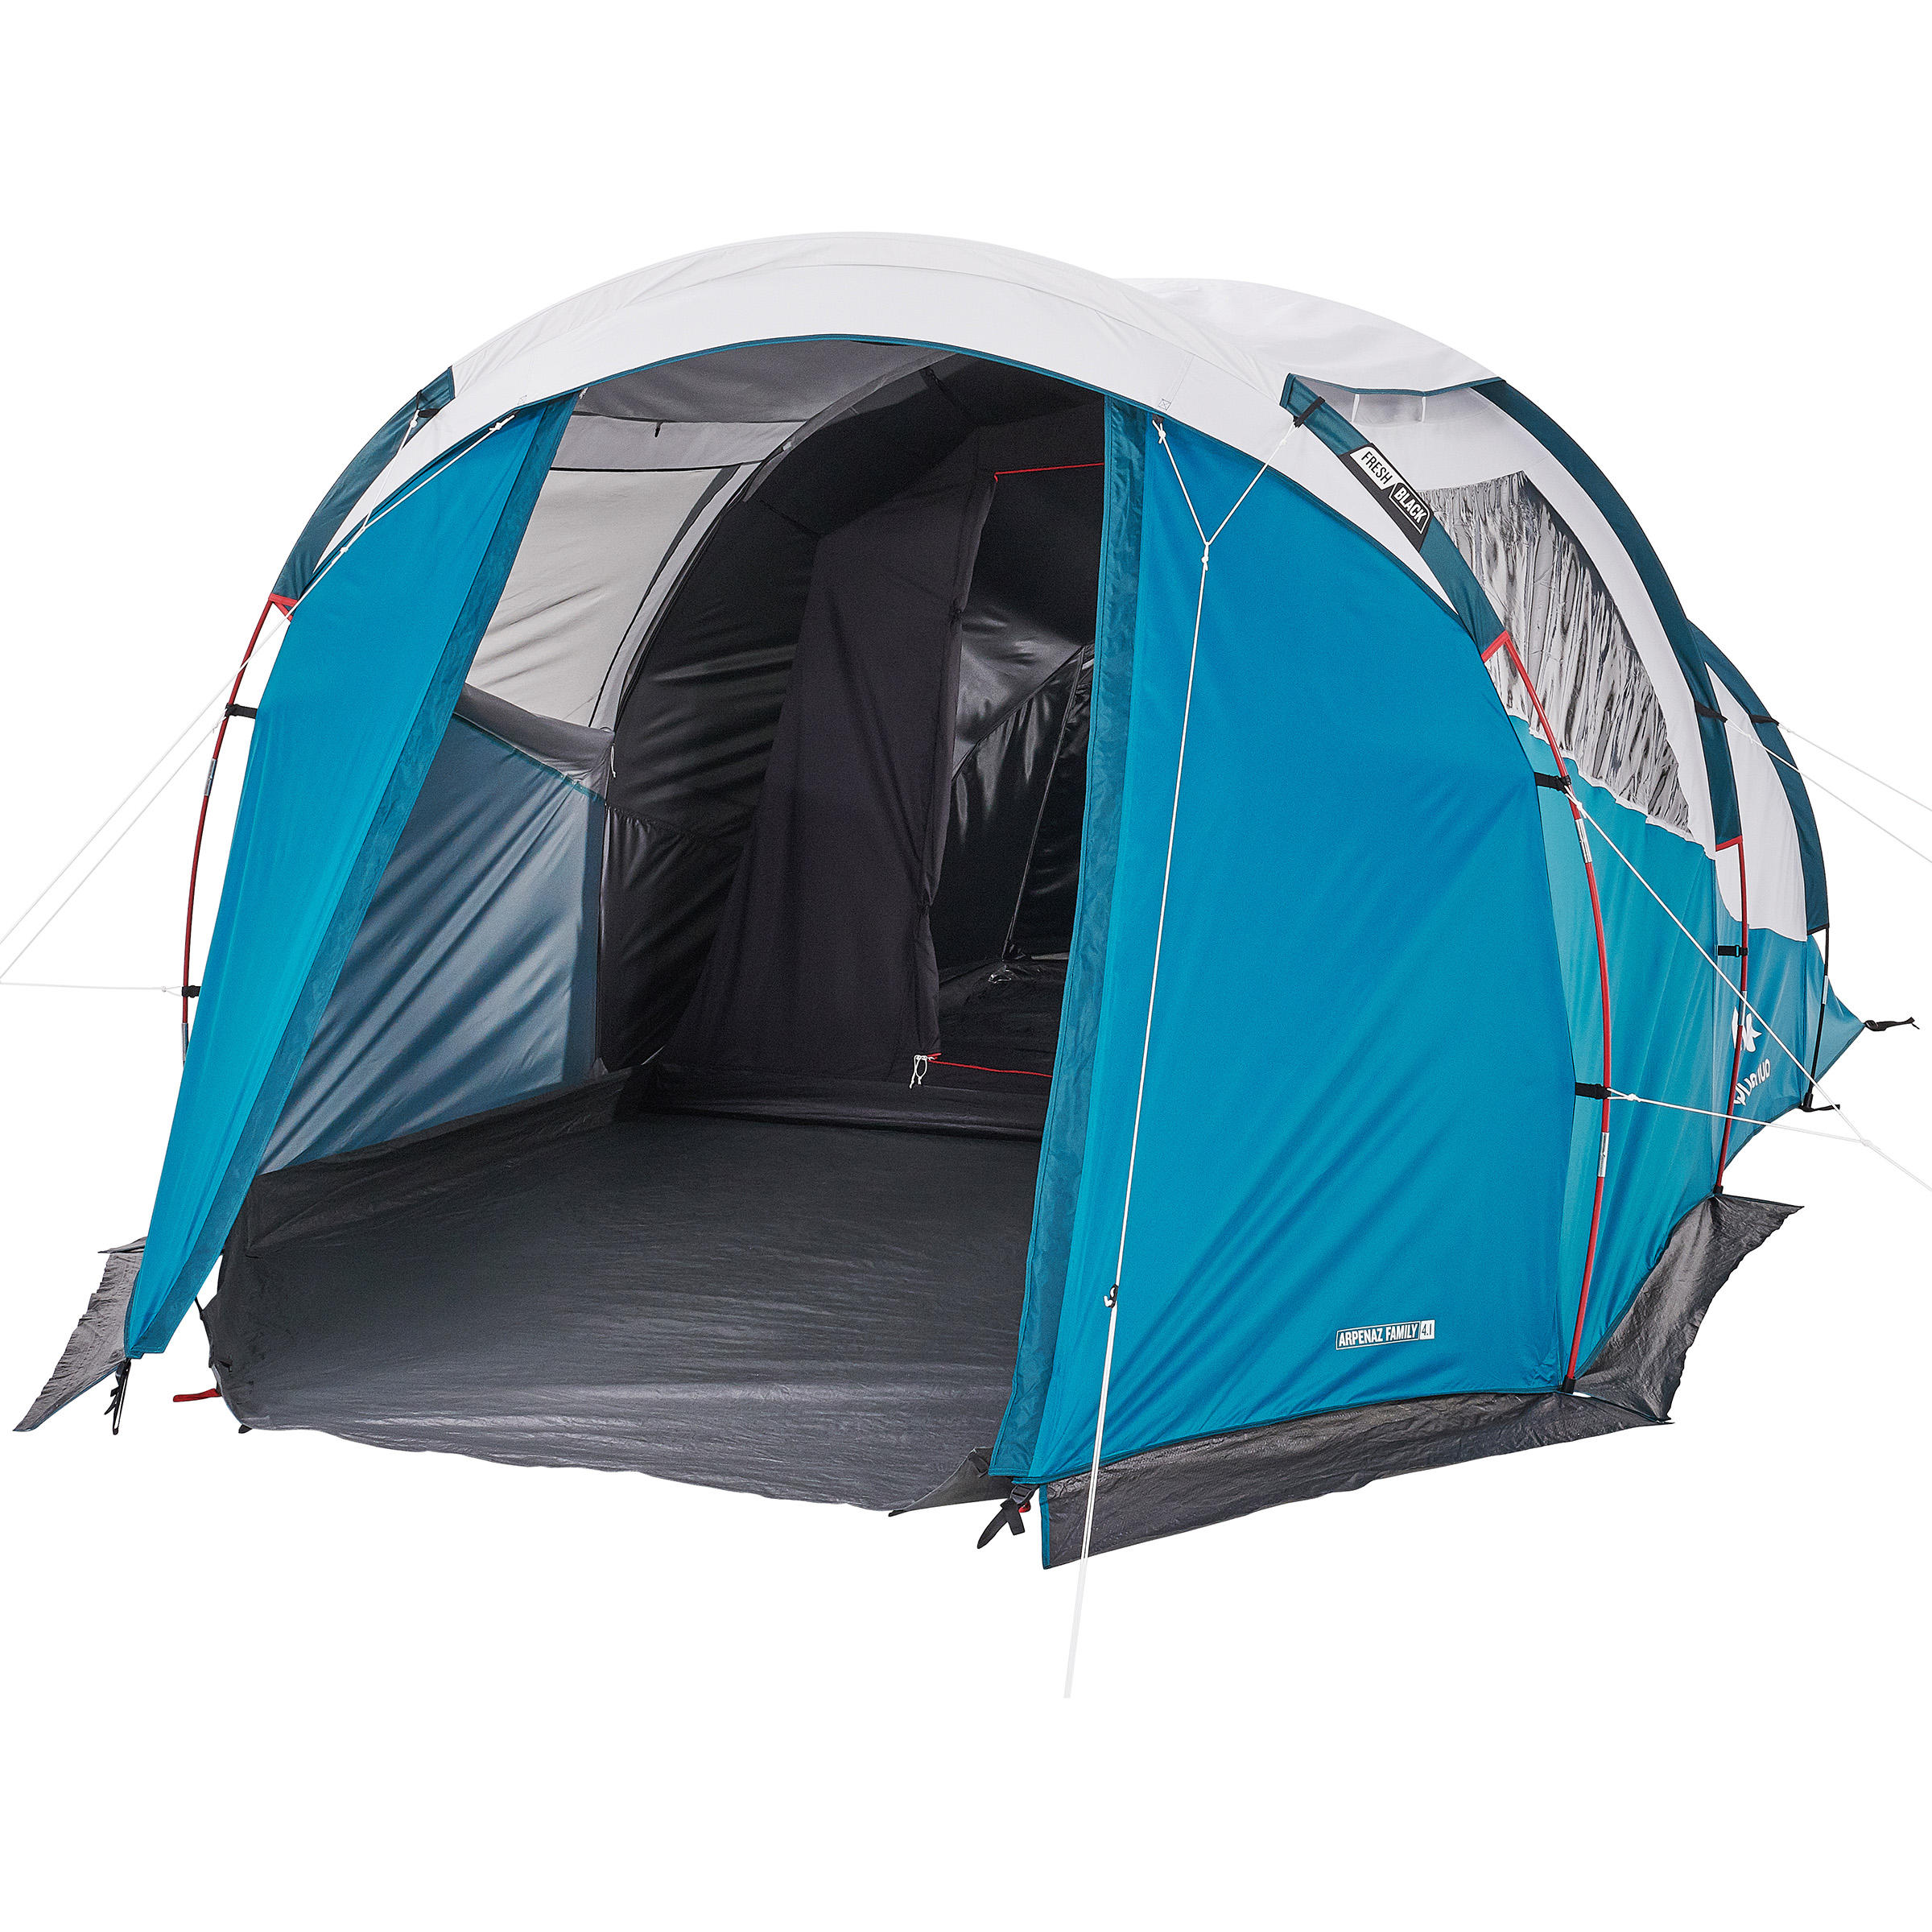 abc90a7f6 Tent Decathlon Arpenaz   ... Arpenaz 4.1 Family C ing Tent